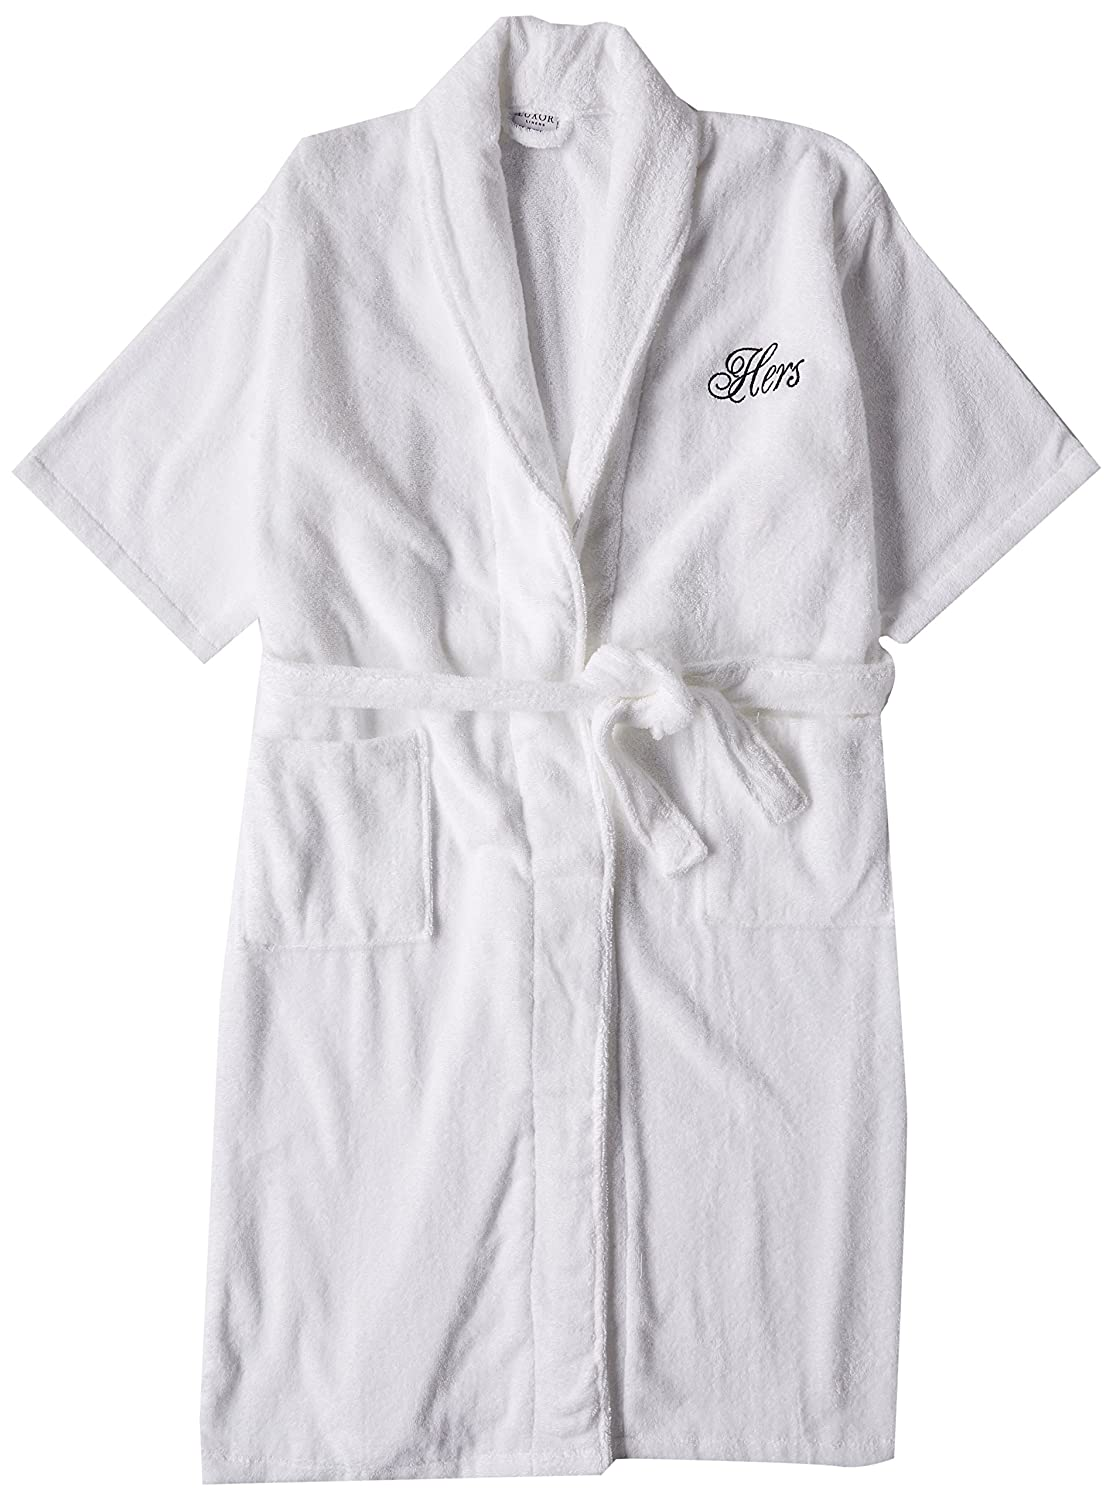 bccf596831 Luxor linens terry cloth bathrobes egyptian cotton jpg 1113x1500 His and  her robes